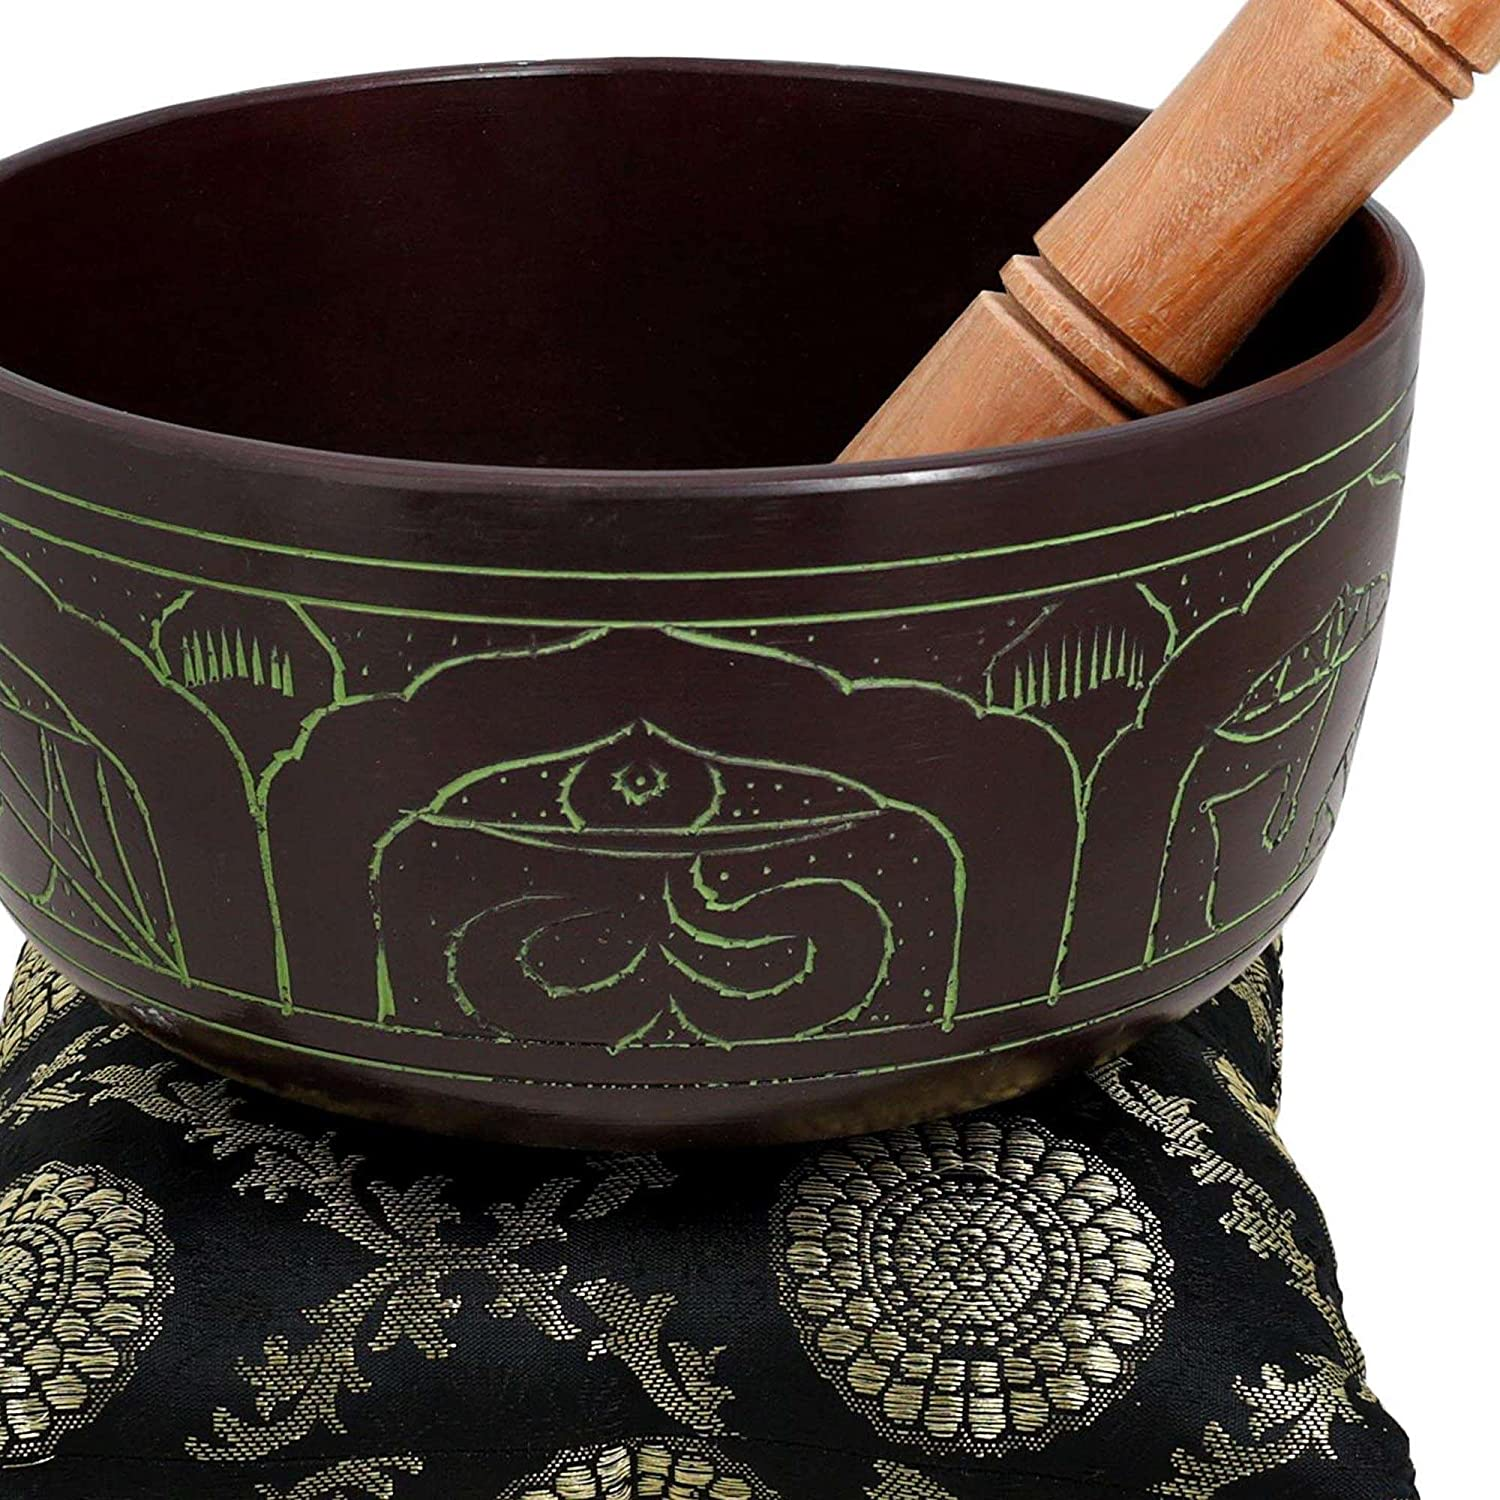 Metal Art India Tibetan Singing Bowl Instruments for Meditation Touch Bell 7 inches